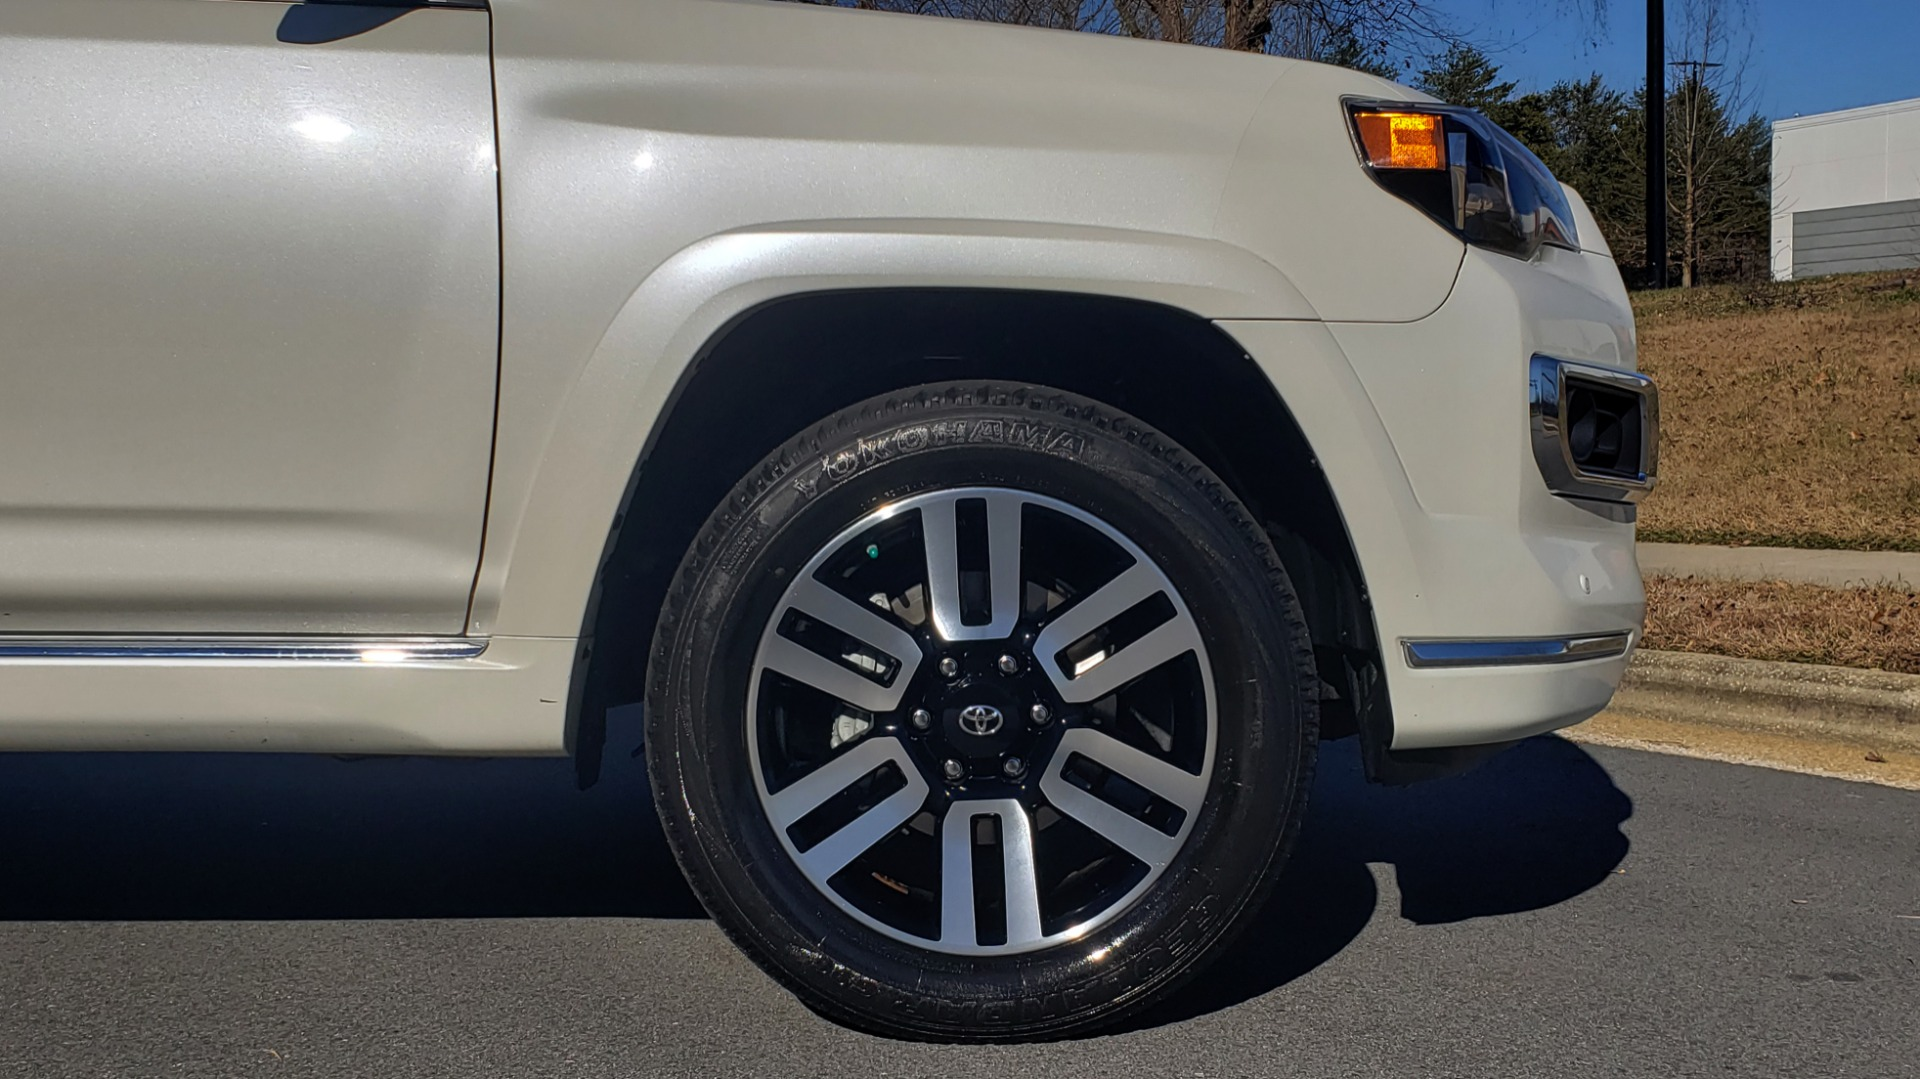 Used 2018 Toyota 4RUNNER LIMITED 4X4 / 4.0L V6 / AUTO / NAV / SUNROOF / JBL AUDIO / REARVIEW for sale Sold at Formula Imports in Charlotte NC 28227 88